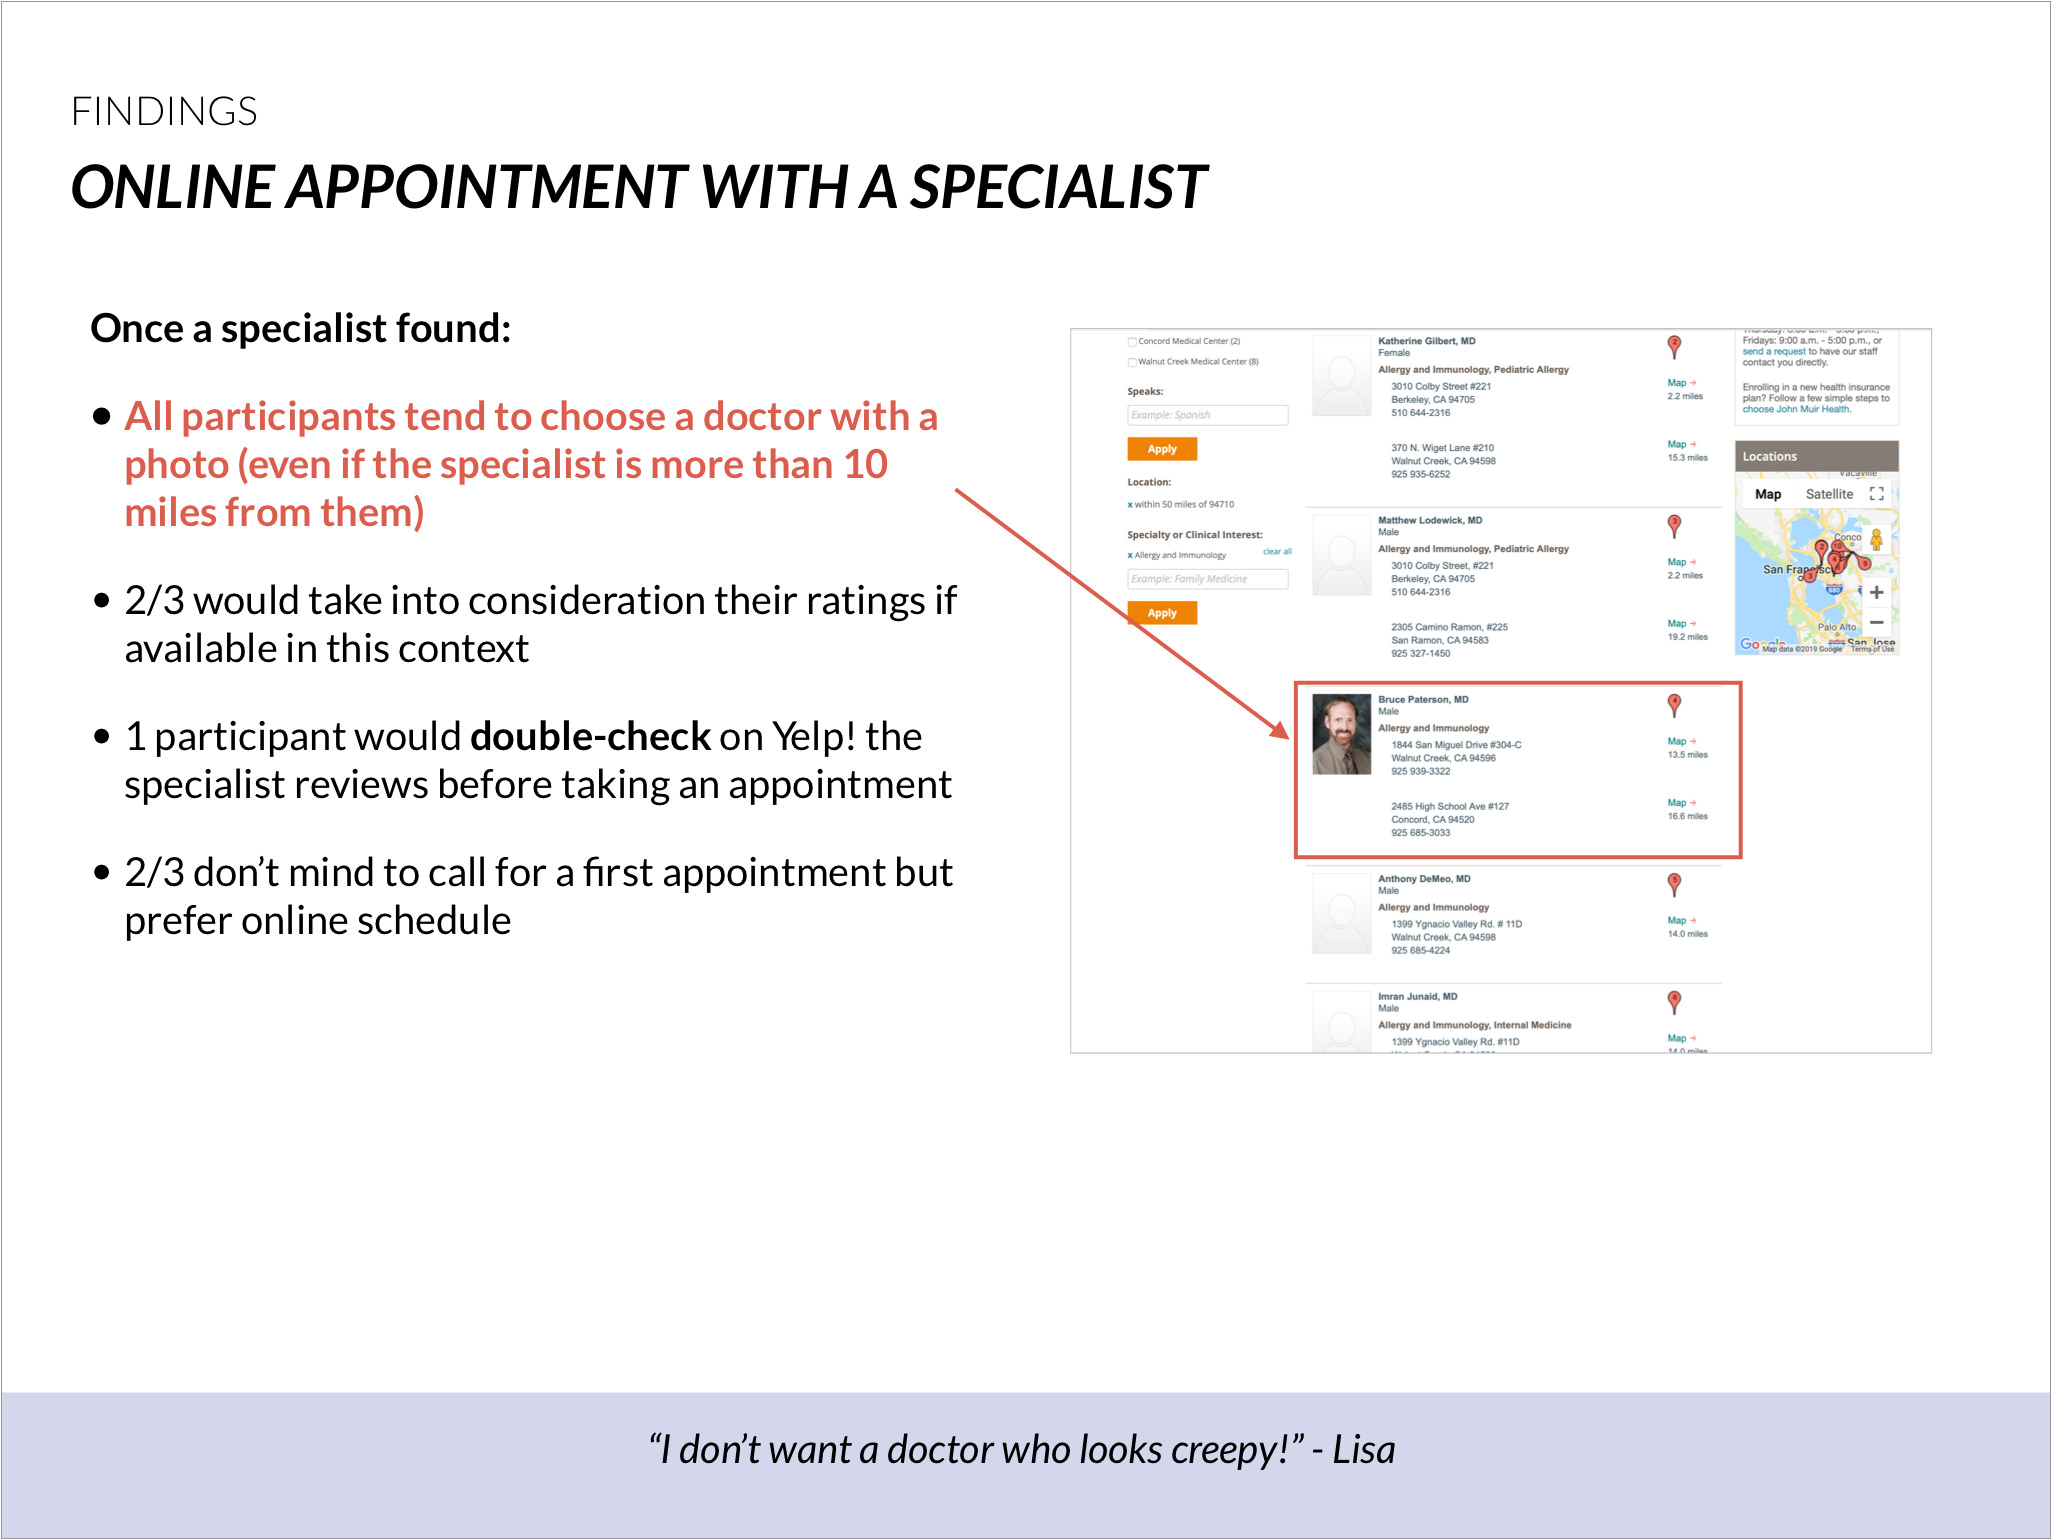 Online scheduling: all participants choose a doctor with a profile photo